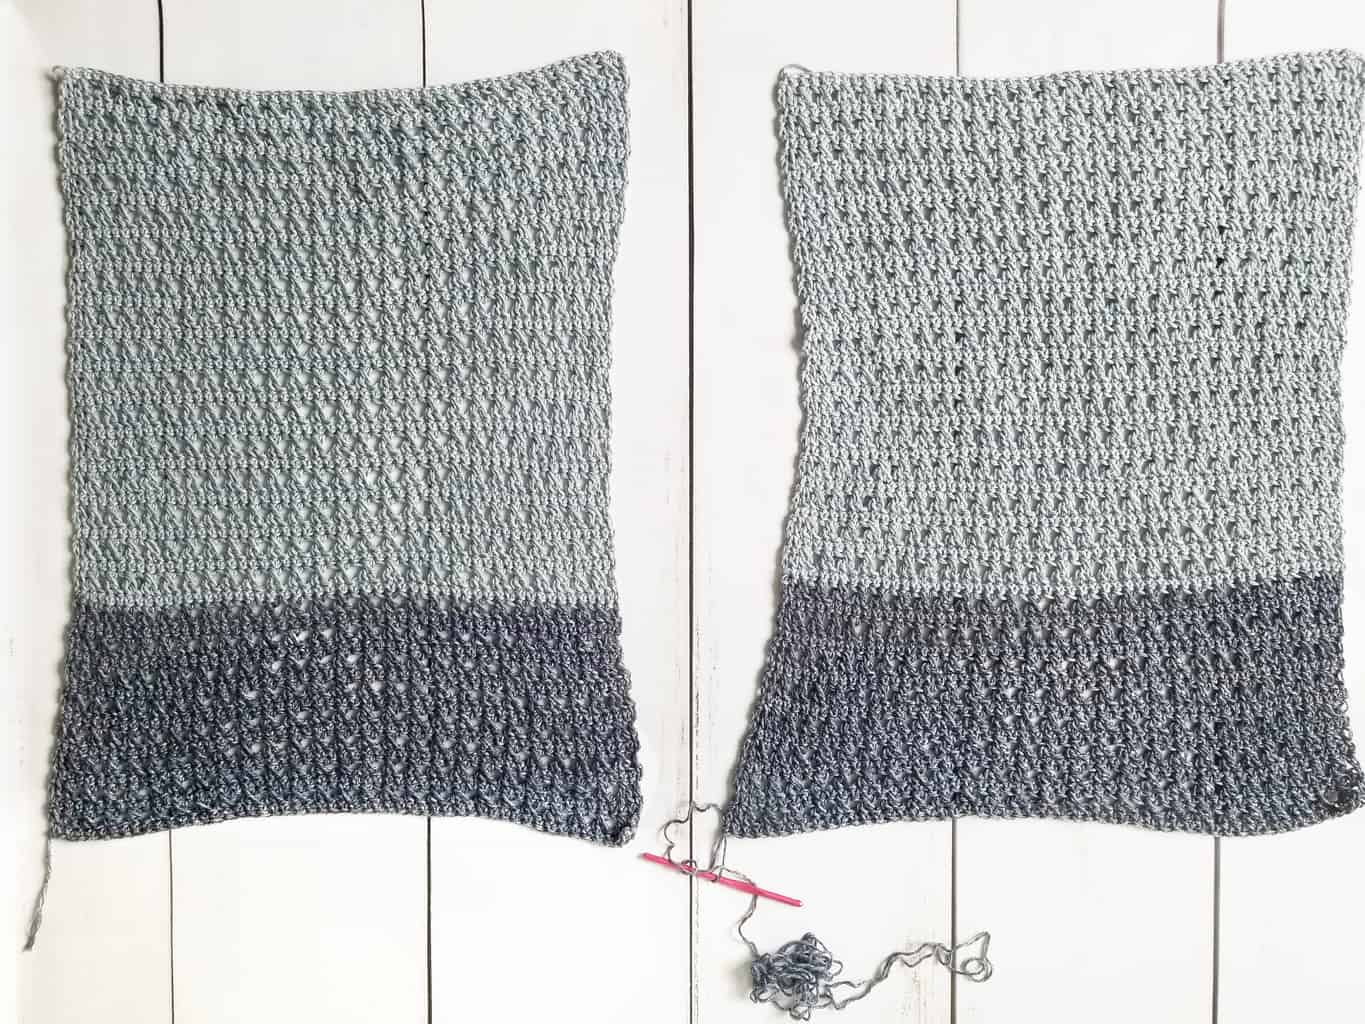 Joining Crochet Panels